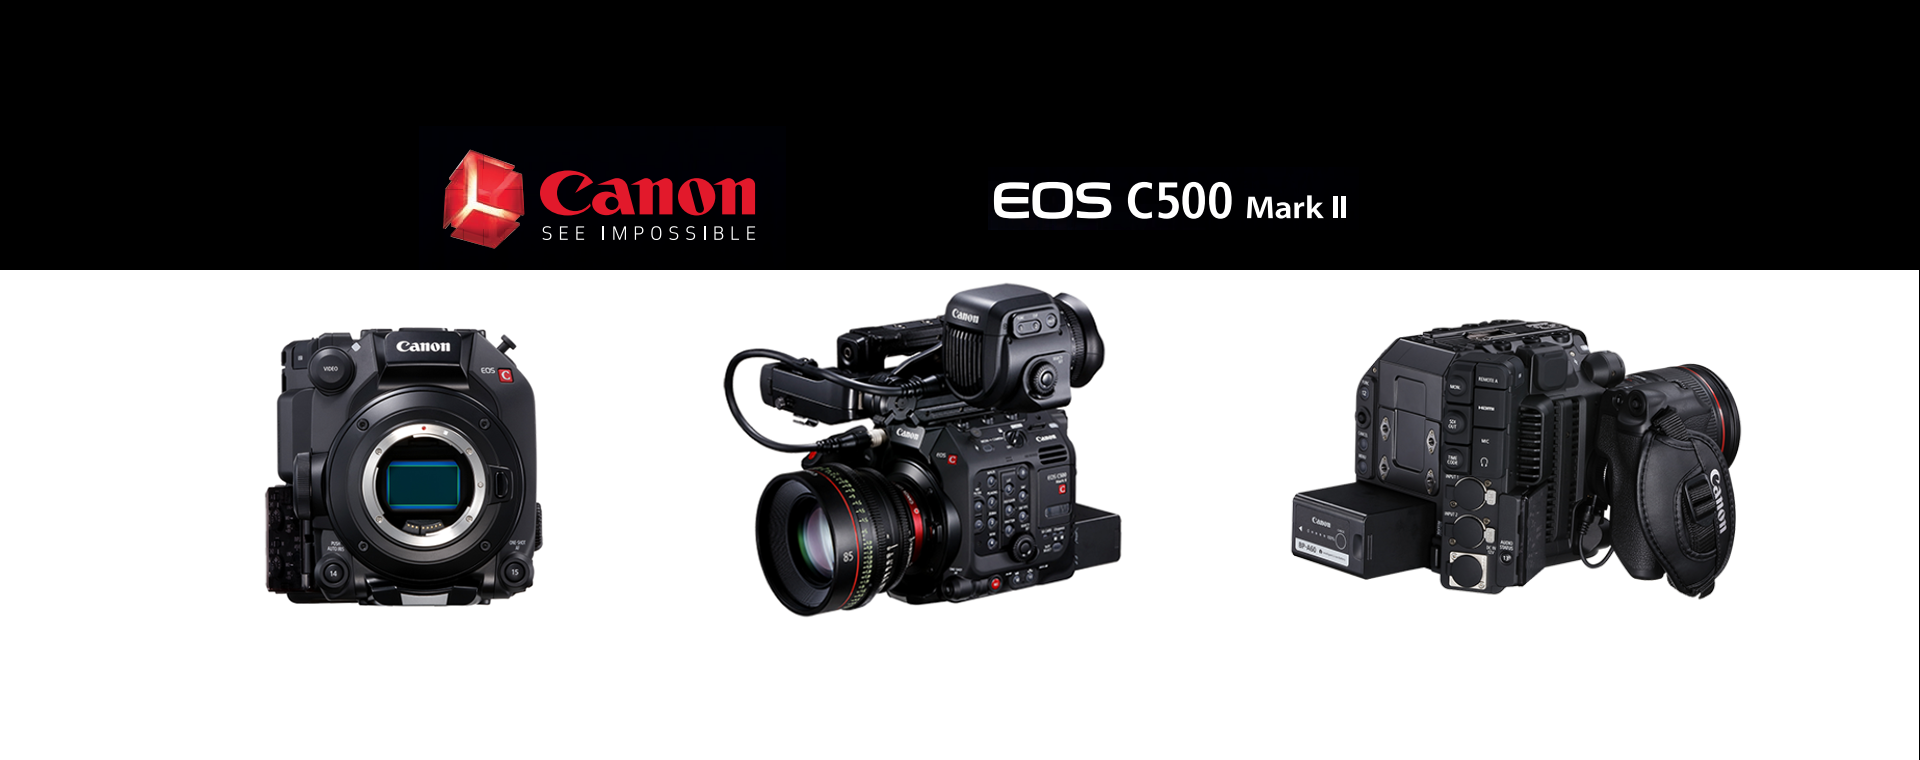 Canon EOS C500 Mark II in EF or Pl Mount